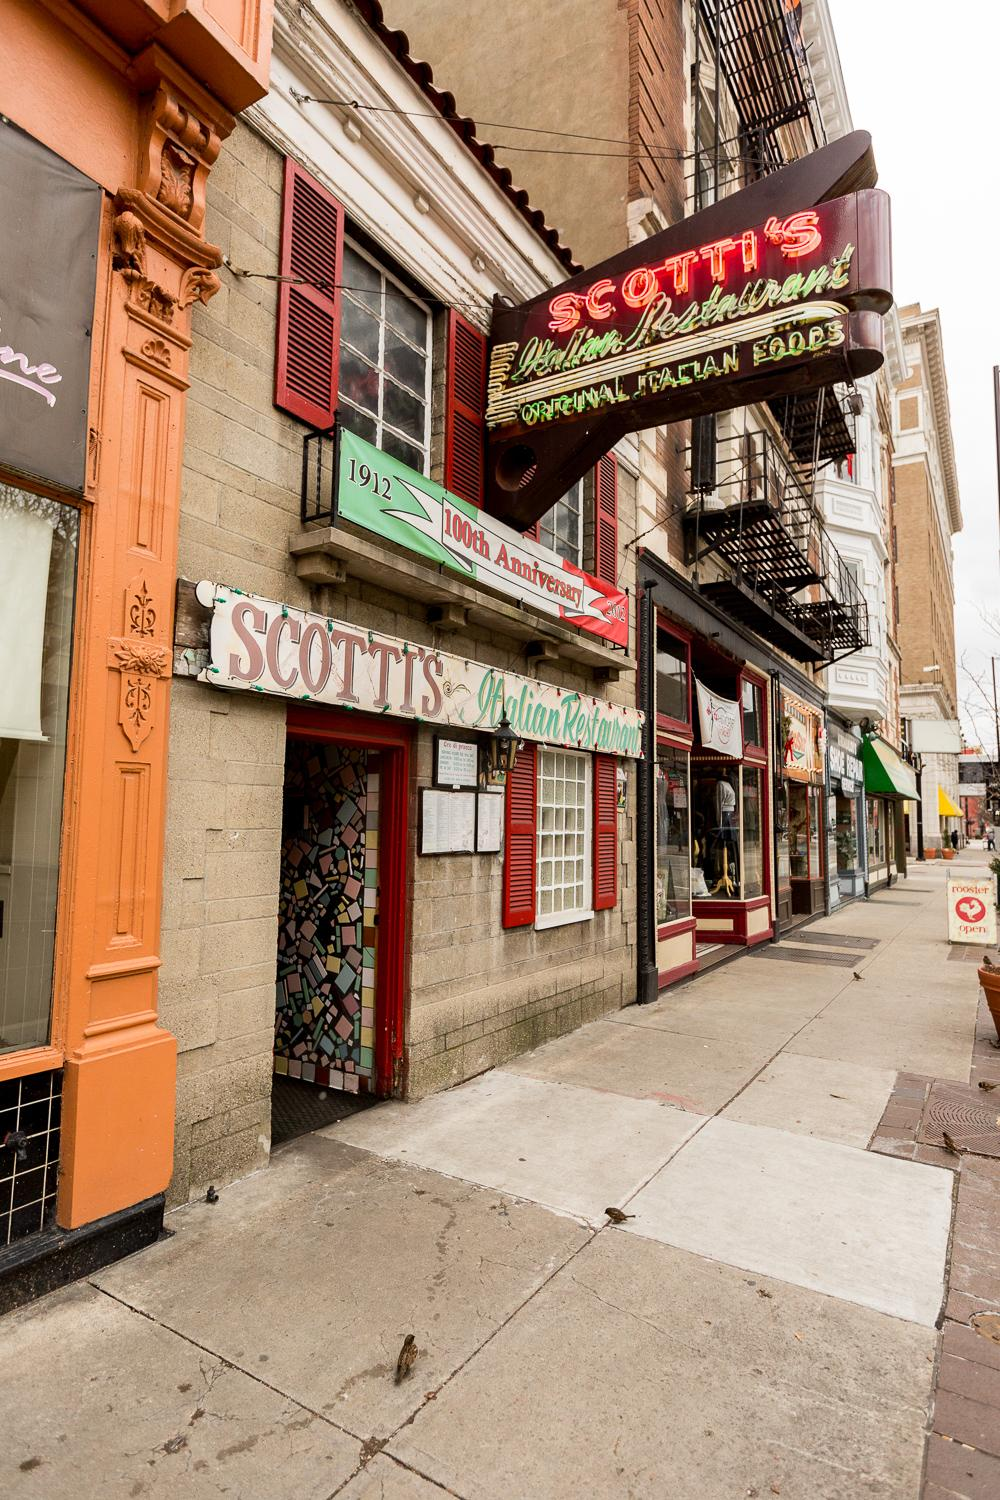 Scotti's Italian Restaurant is located in Downtown Cincinnati at 919 Vine Street (45202). / Image: Daniel Smyth Photography